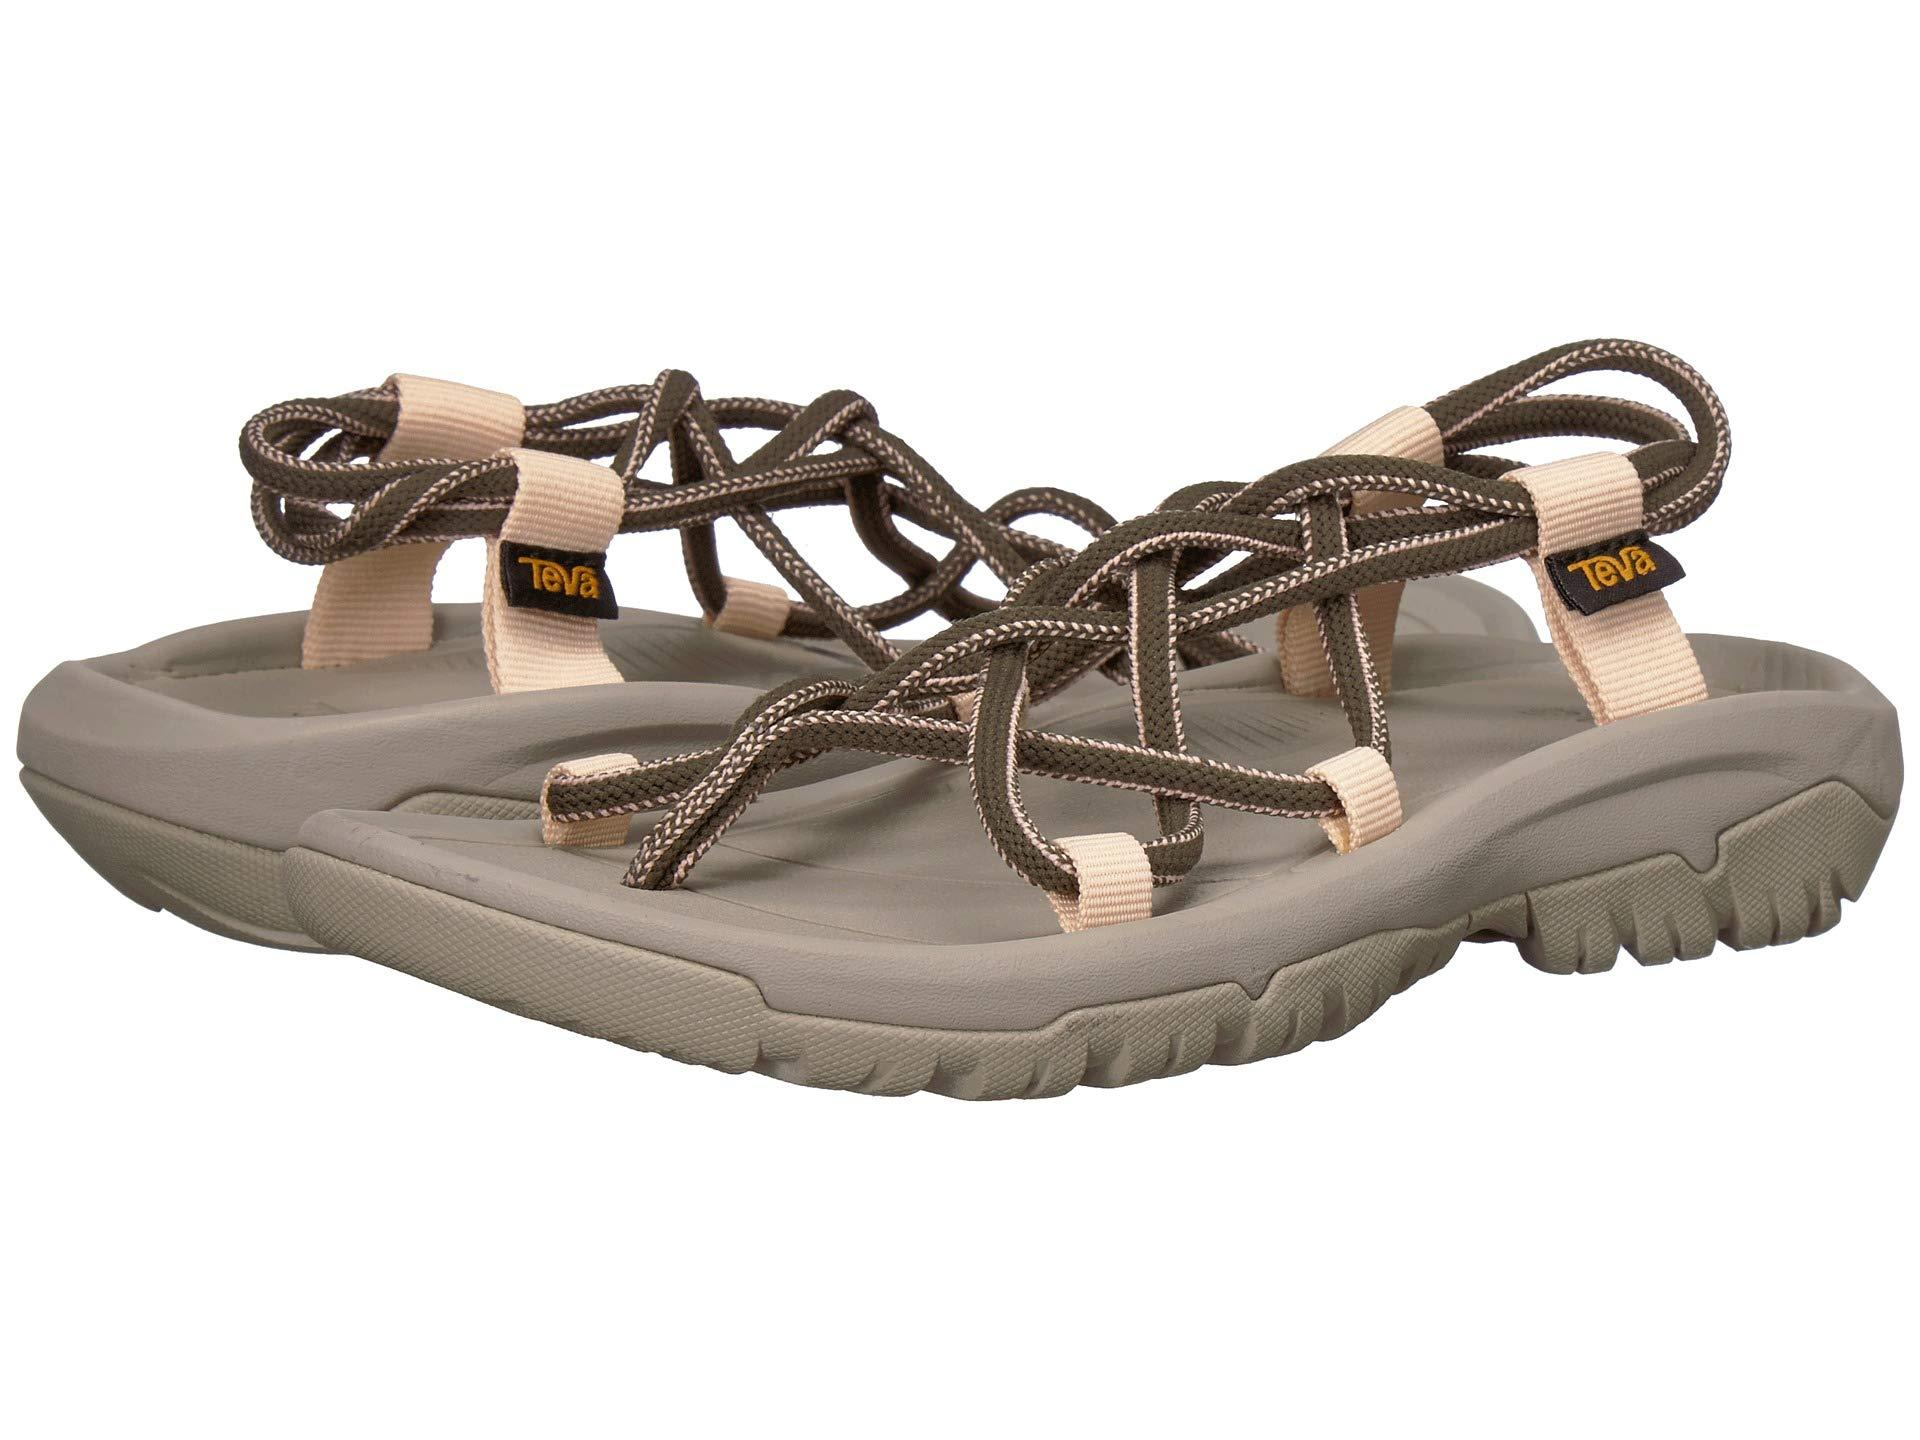 9442562eba6 Teva - Multicolor Hurricane Xlt Infinity Sandals - Lyst. View fullscreen